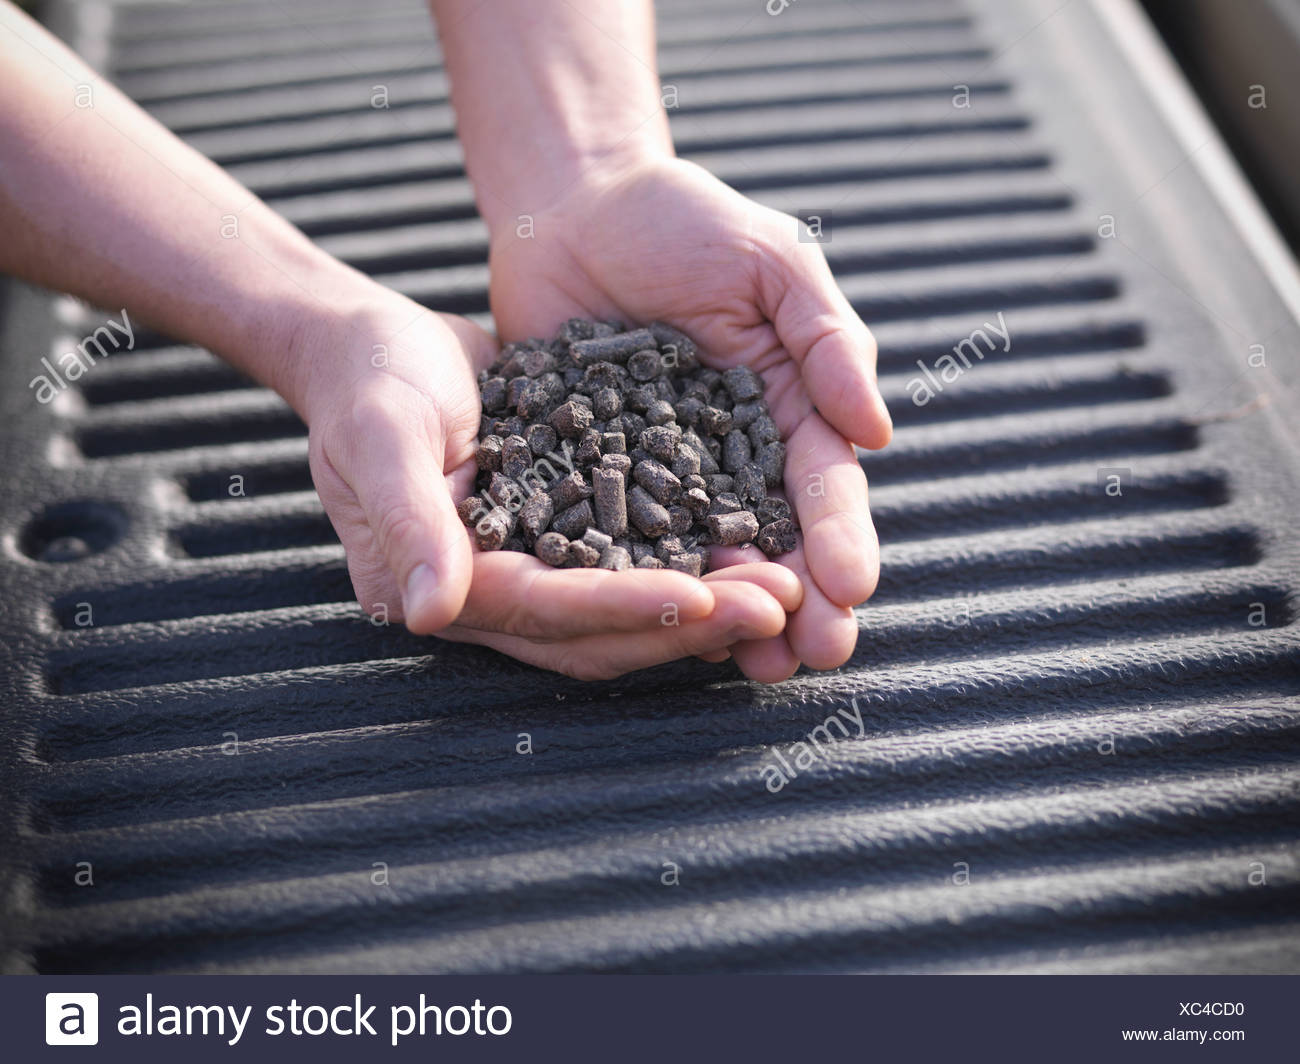 Hands holding pile of burned wood chips - Stock Image